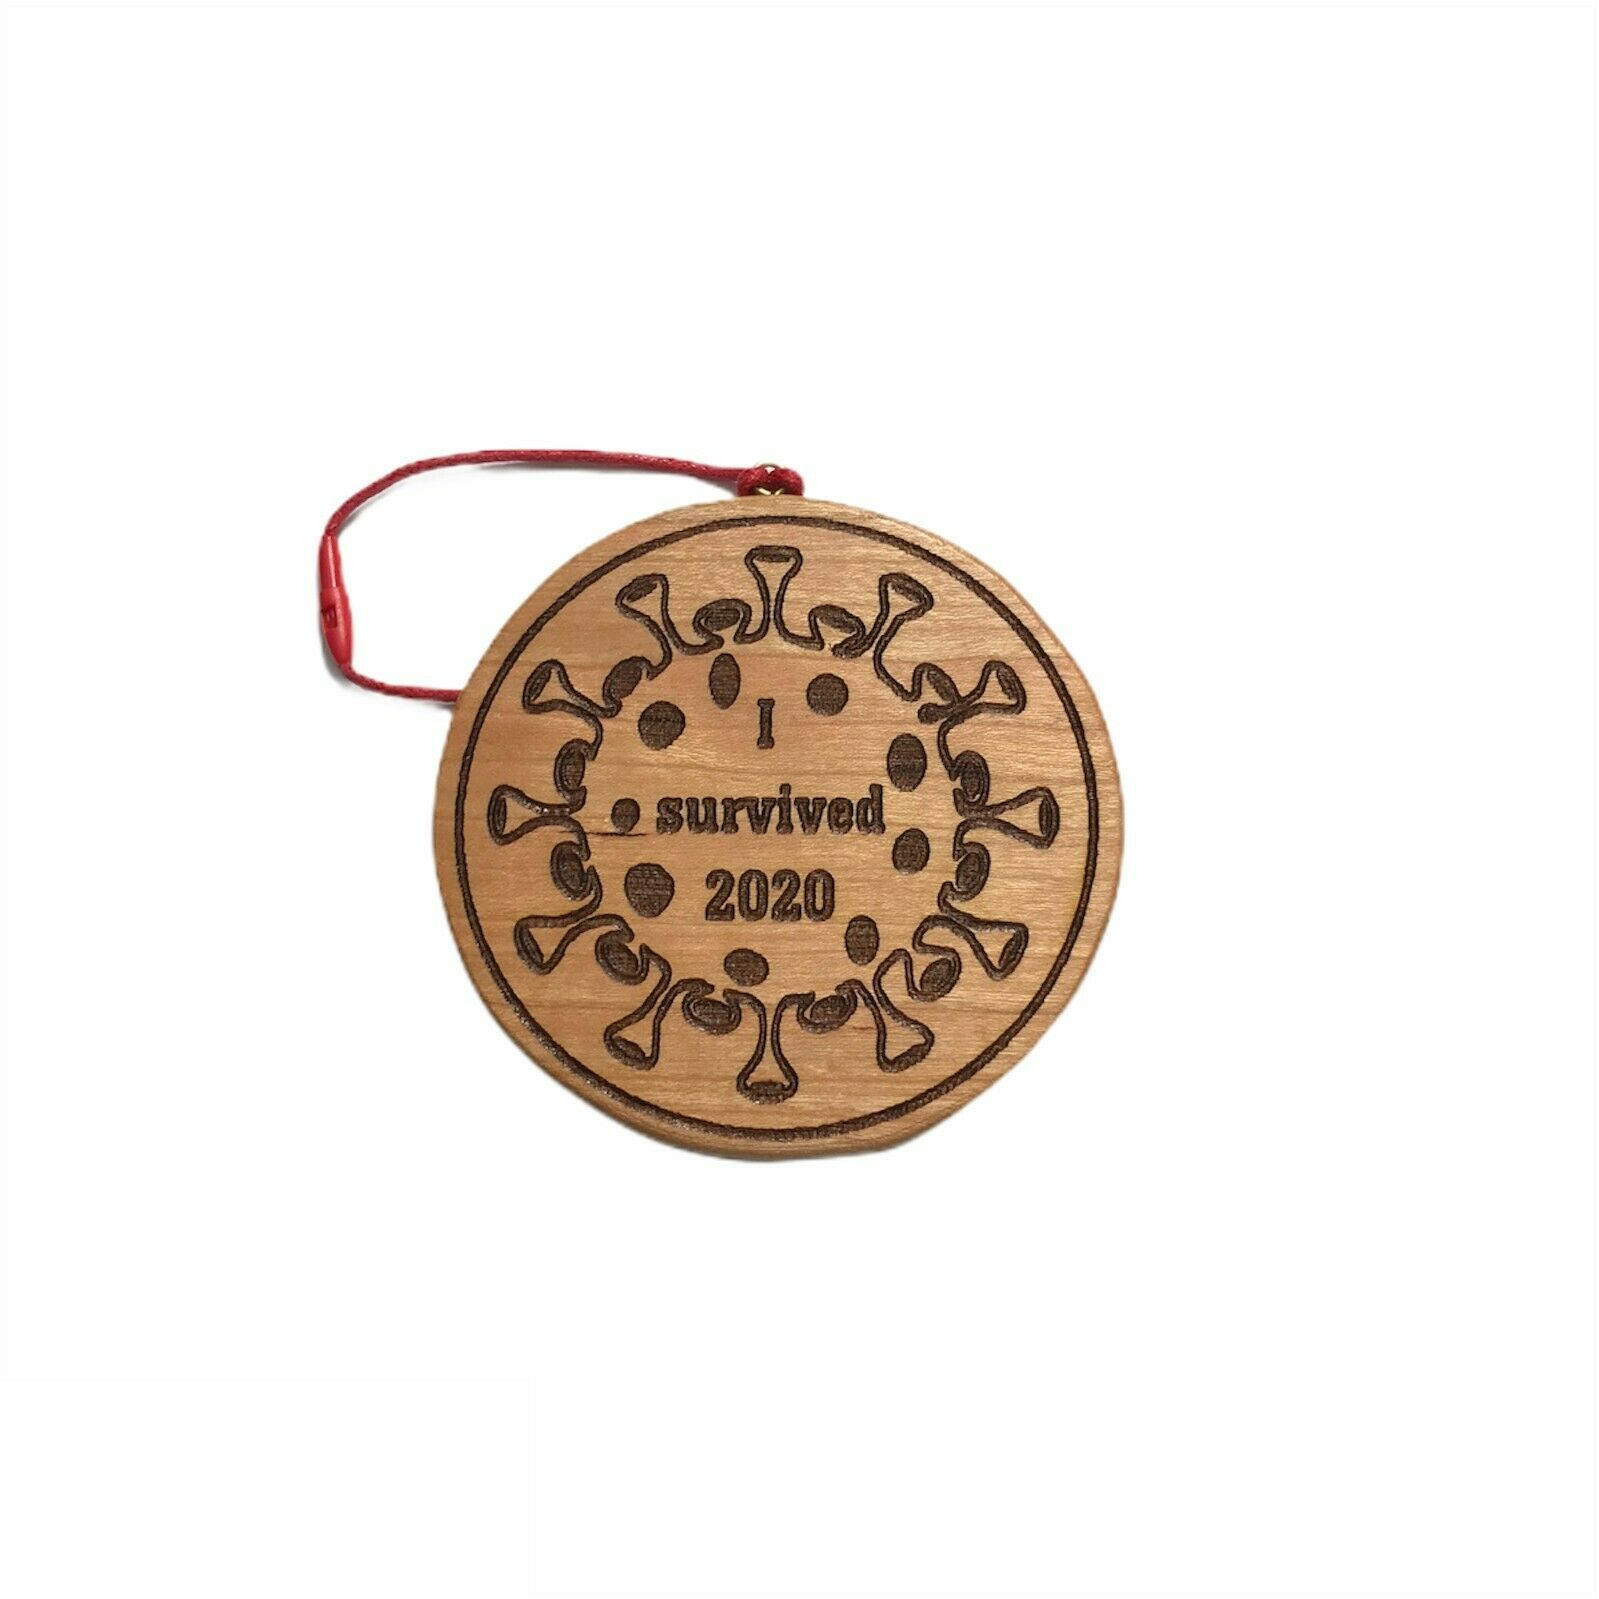 Handmade wooden I survived 2020 ornament in 2020